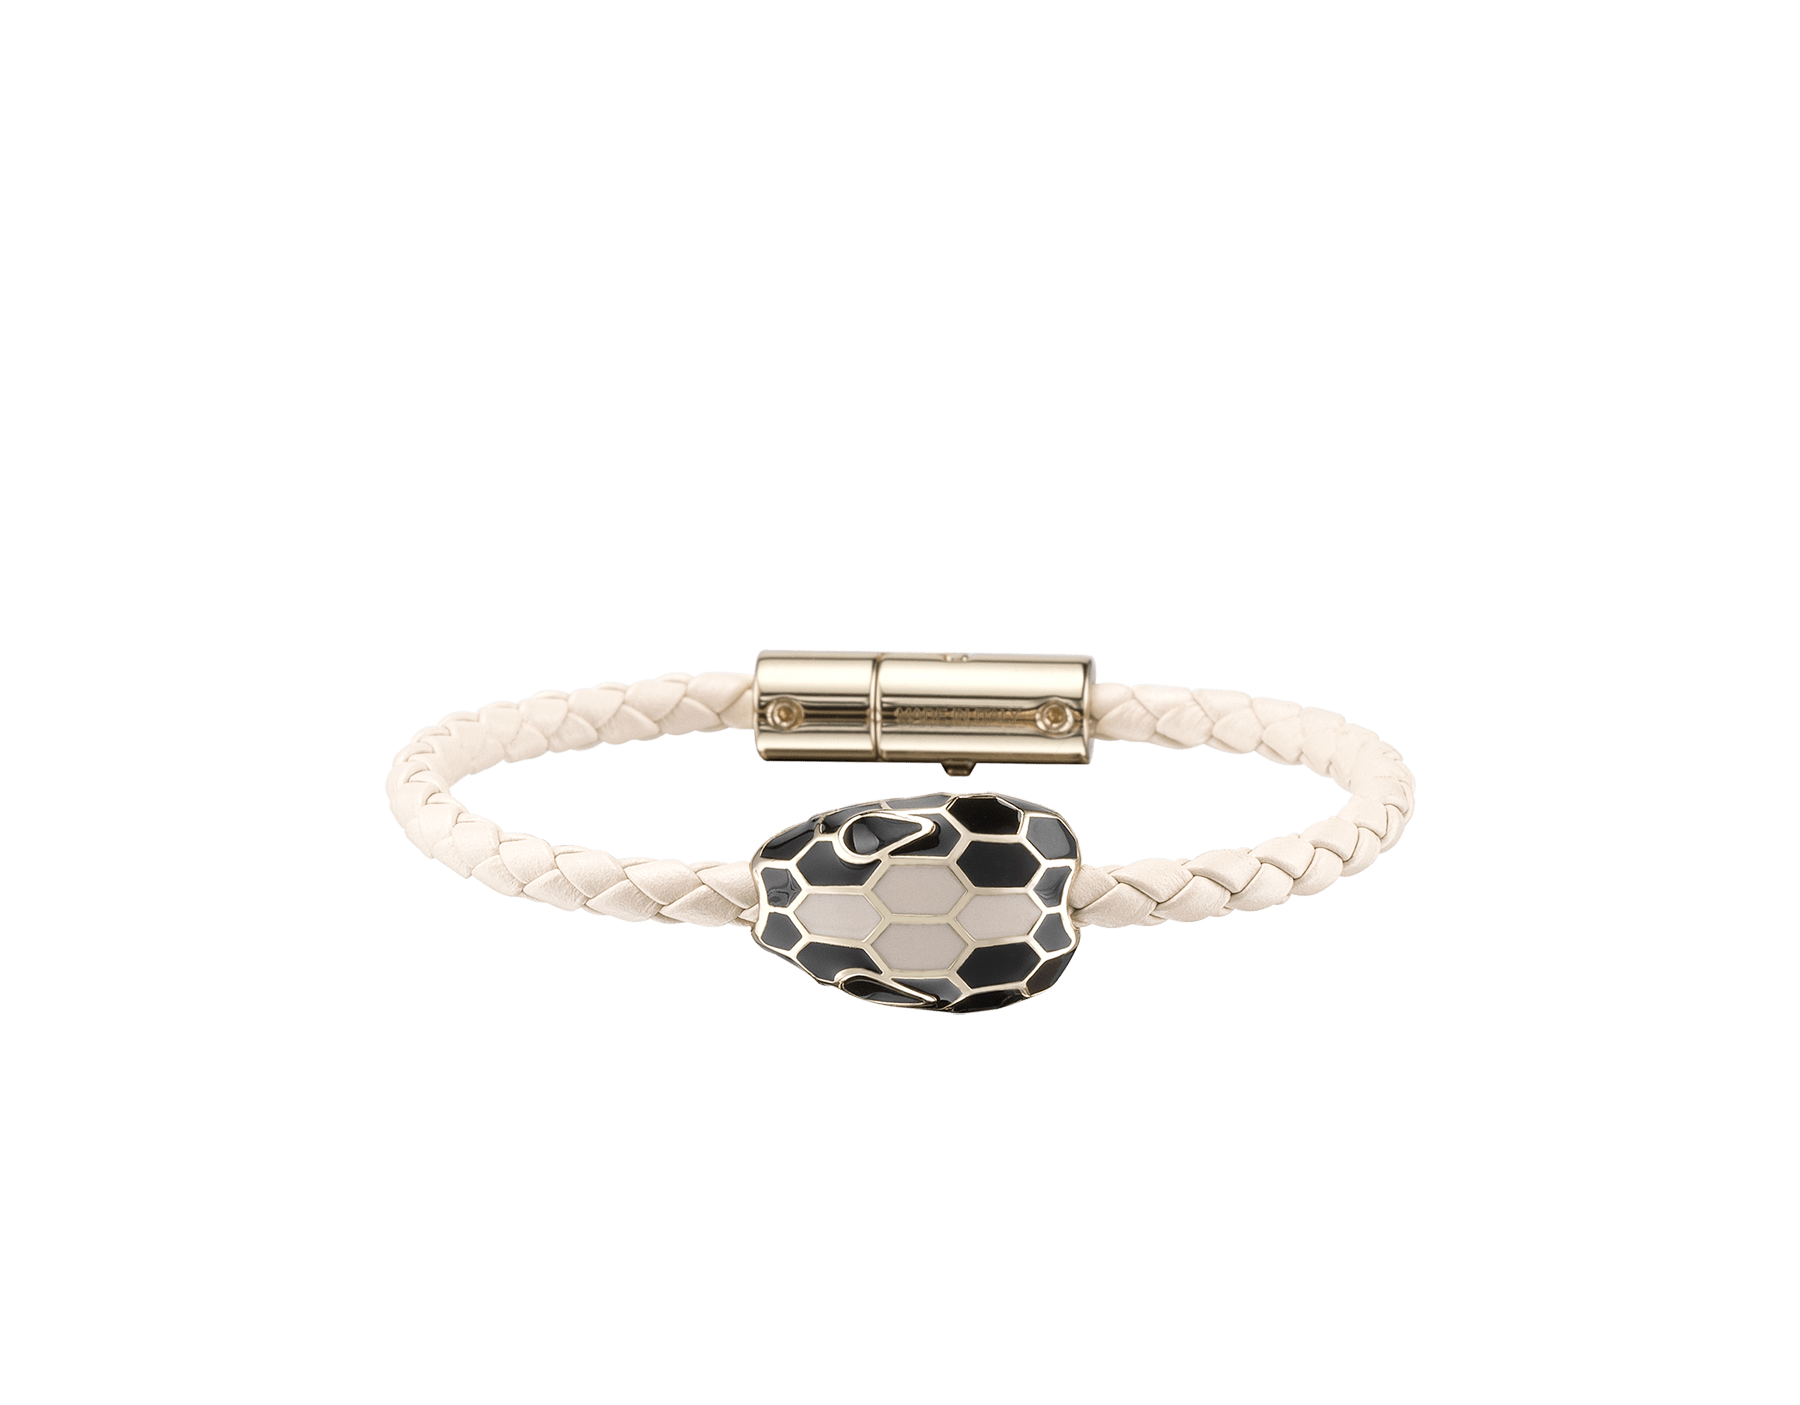 Serpenti Forever braid bracelet in milky opal woven calf leather with an iconic snakehead décor in black and milky opal enamel. SerpBraid-WCL-MO image 1